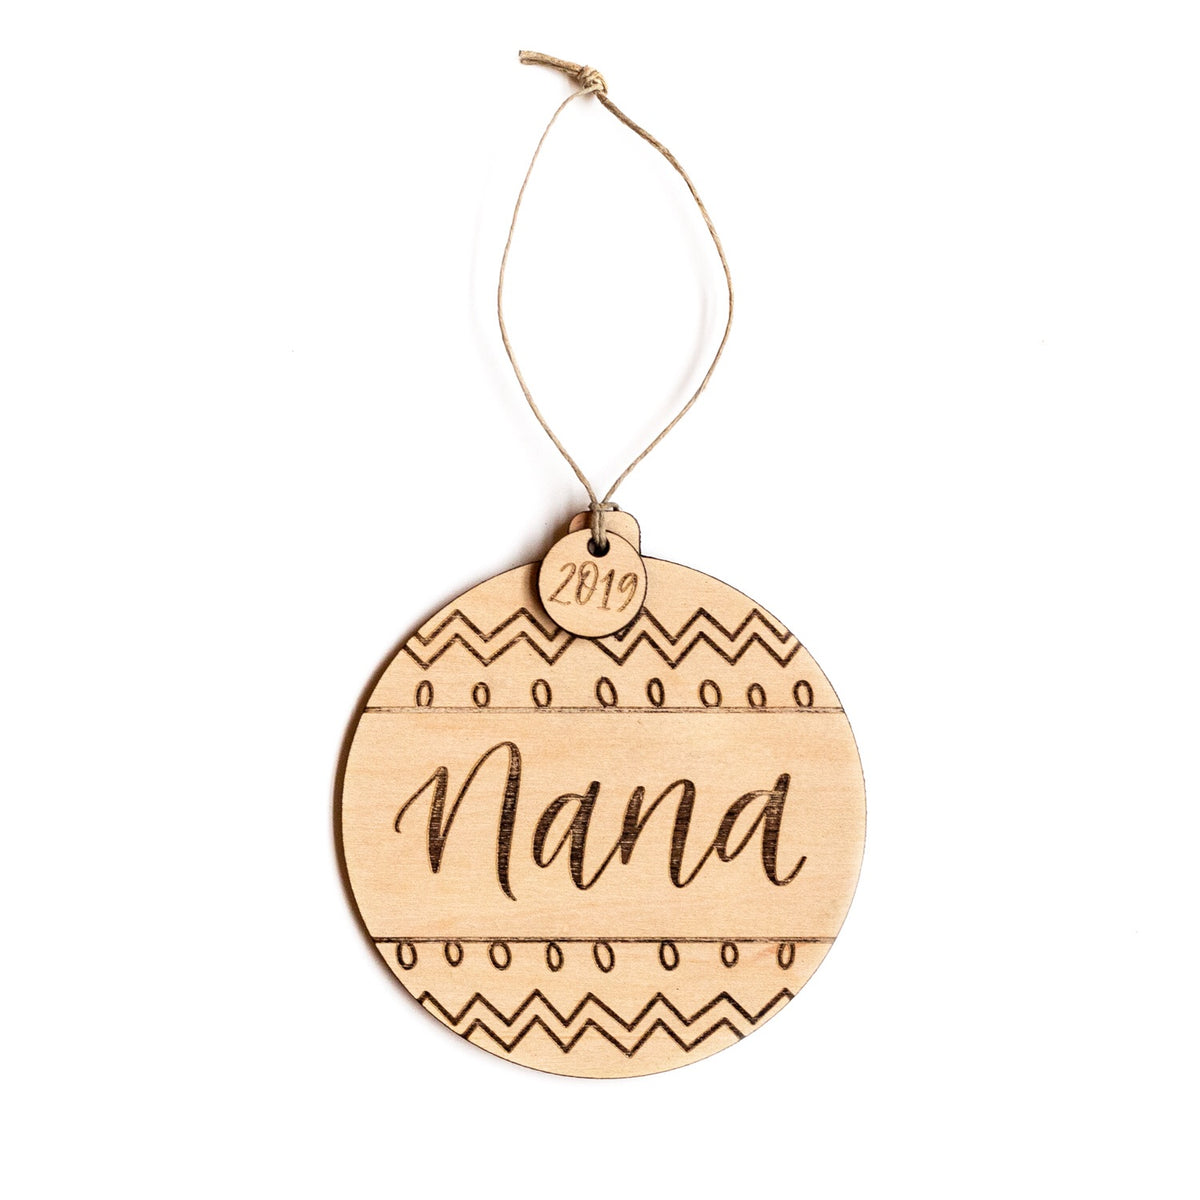 Nana ORNAMENT